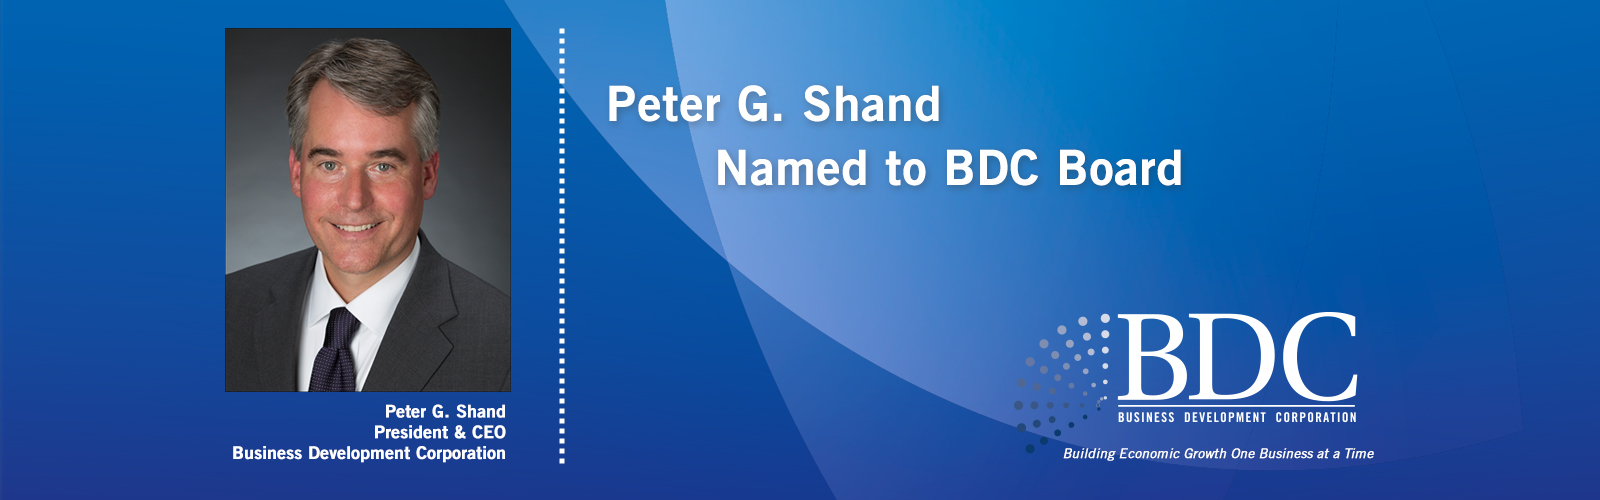 Peter G. Shand Named to BDC Board